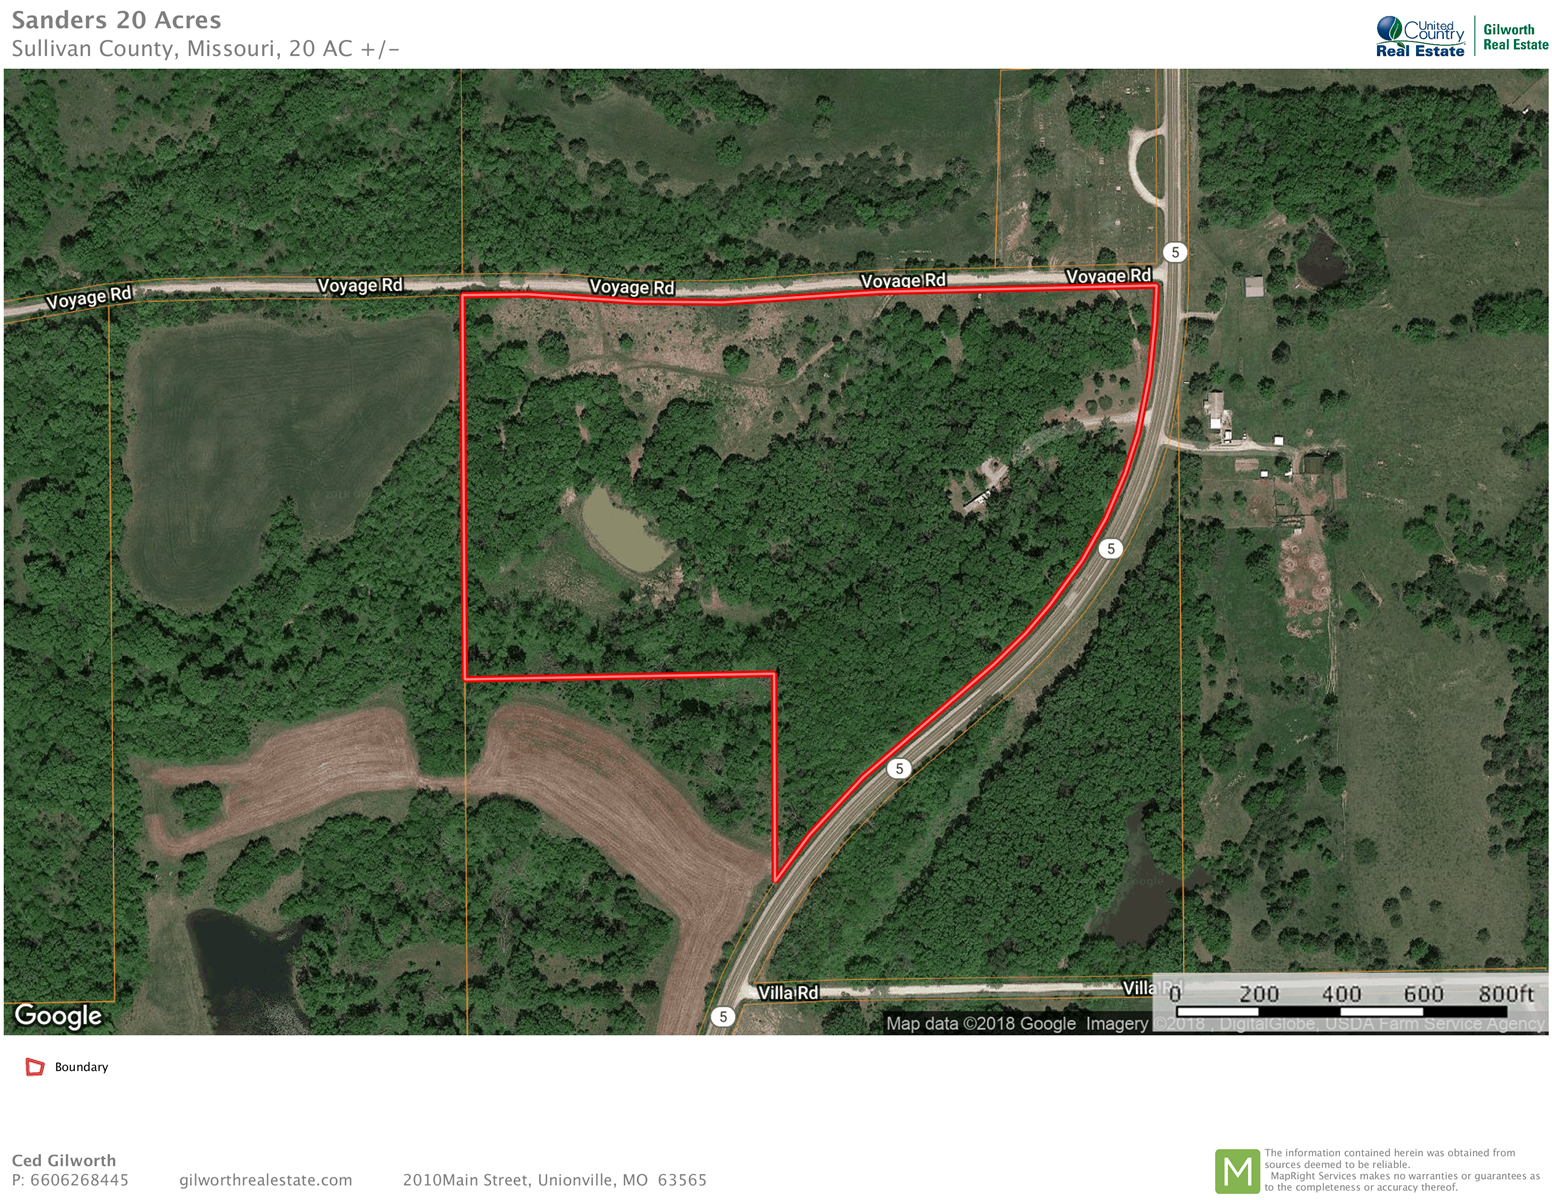 Recreational/hunting land for sale south of Milan MO.